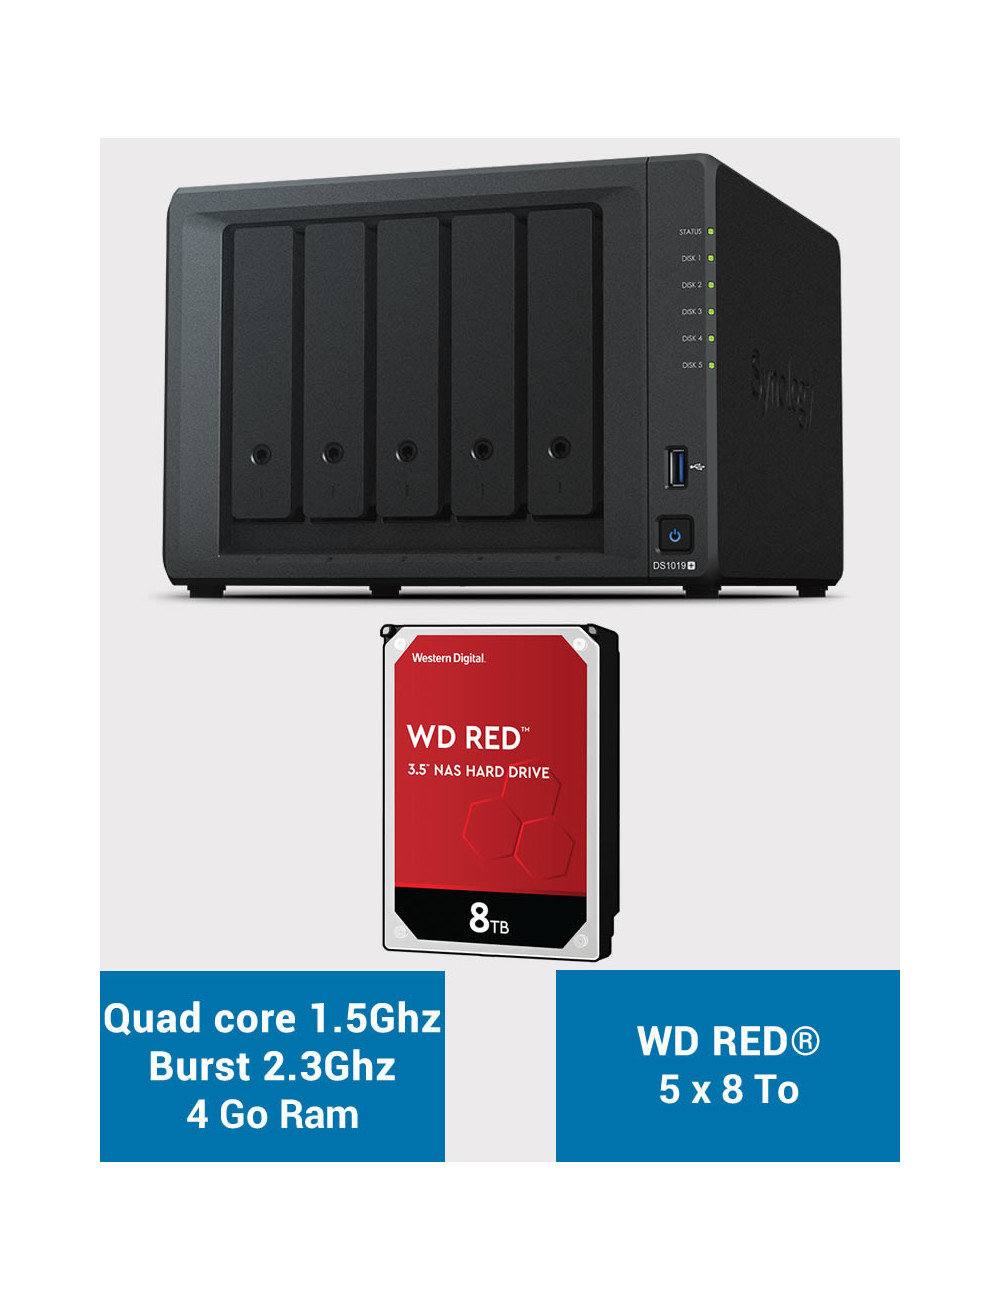 Synology DS1019+ NAS Server WD RED 40TB (5x8TB)